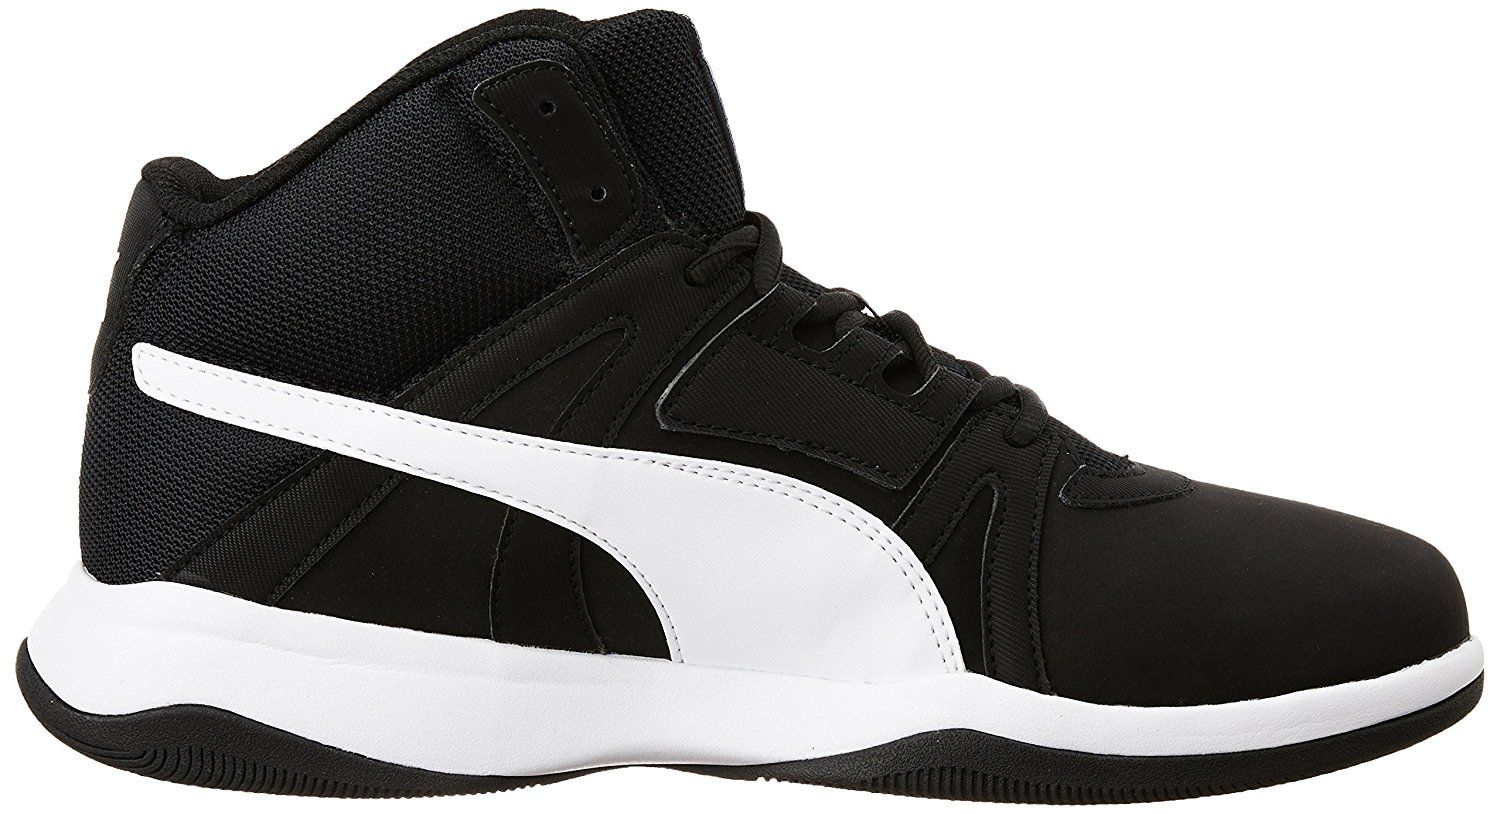 a396b04cc62b6f Puma Men s Rebound Street Evo Sl Idp Sneakers  Buy Online at Low Prices in  India